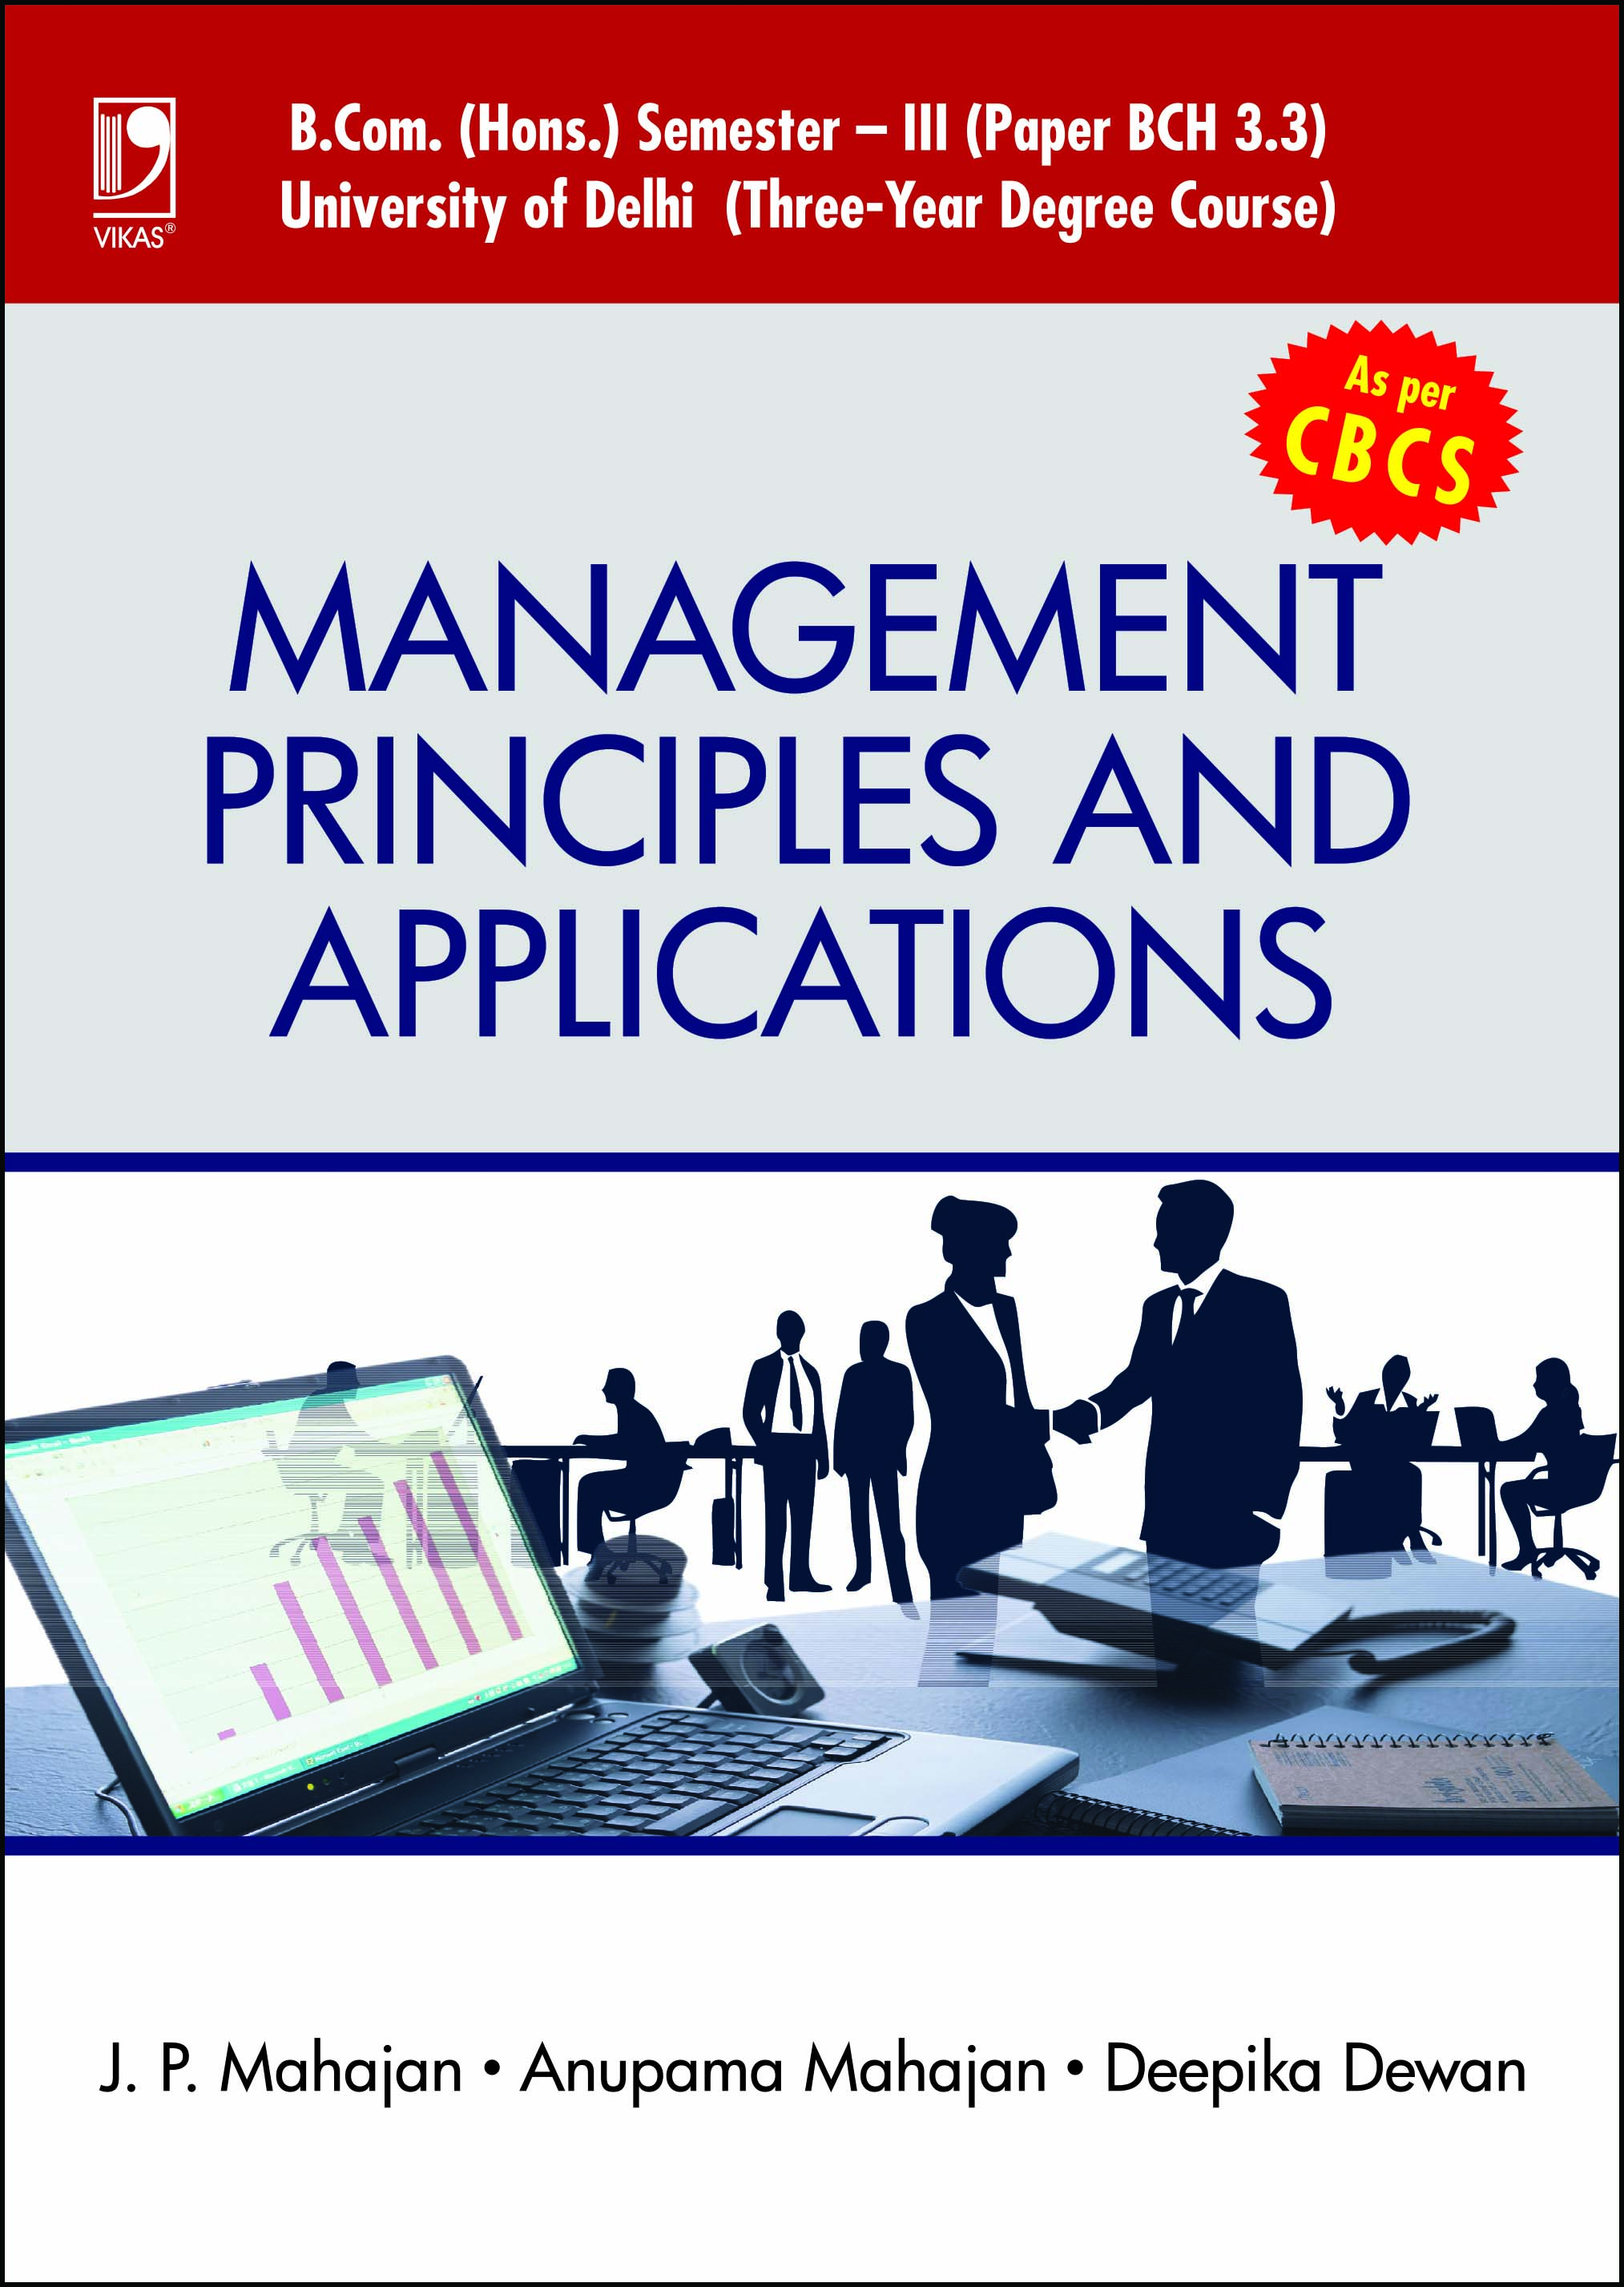 MANAGEMENT PRINCIPLES AND APPLICATIONS: (FOR B.COM, SEM.-3, DELHI UNIVERSITY, AS PER CBCS) by  J P Mahajan